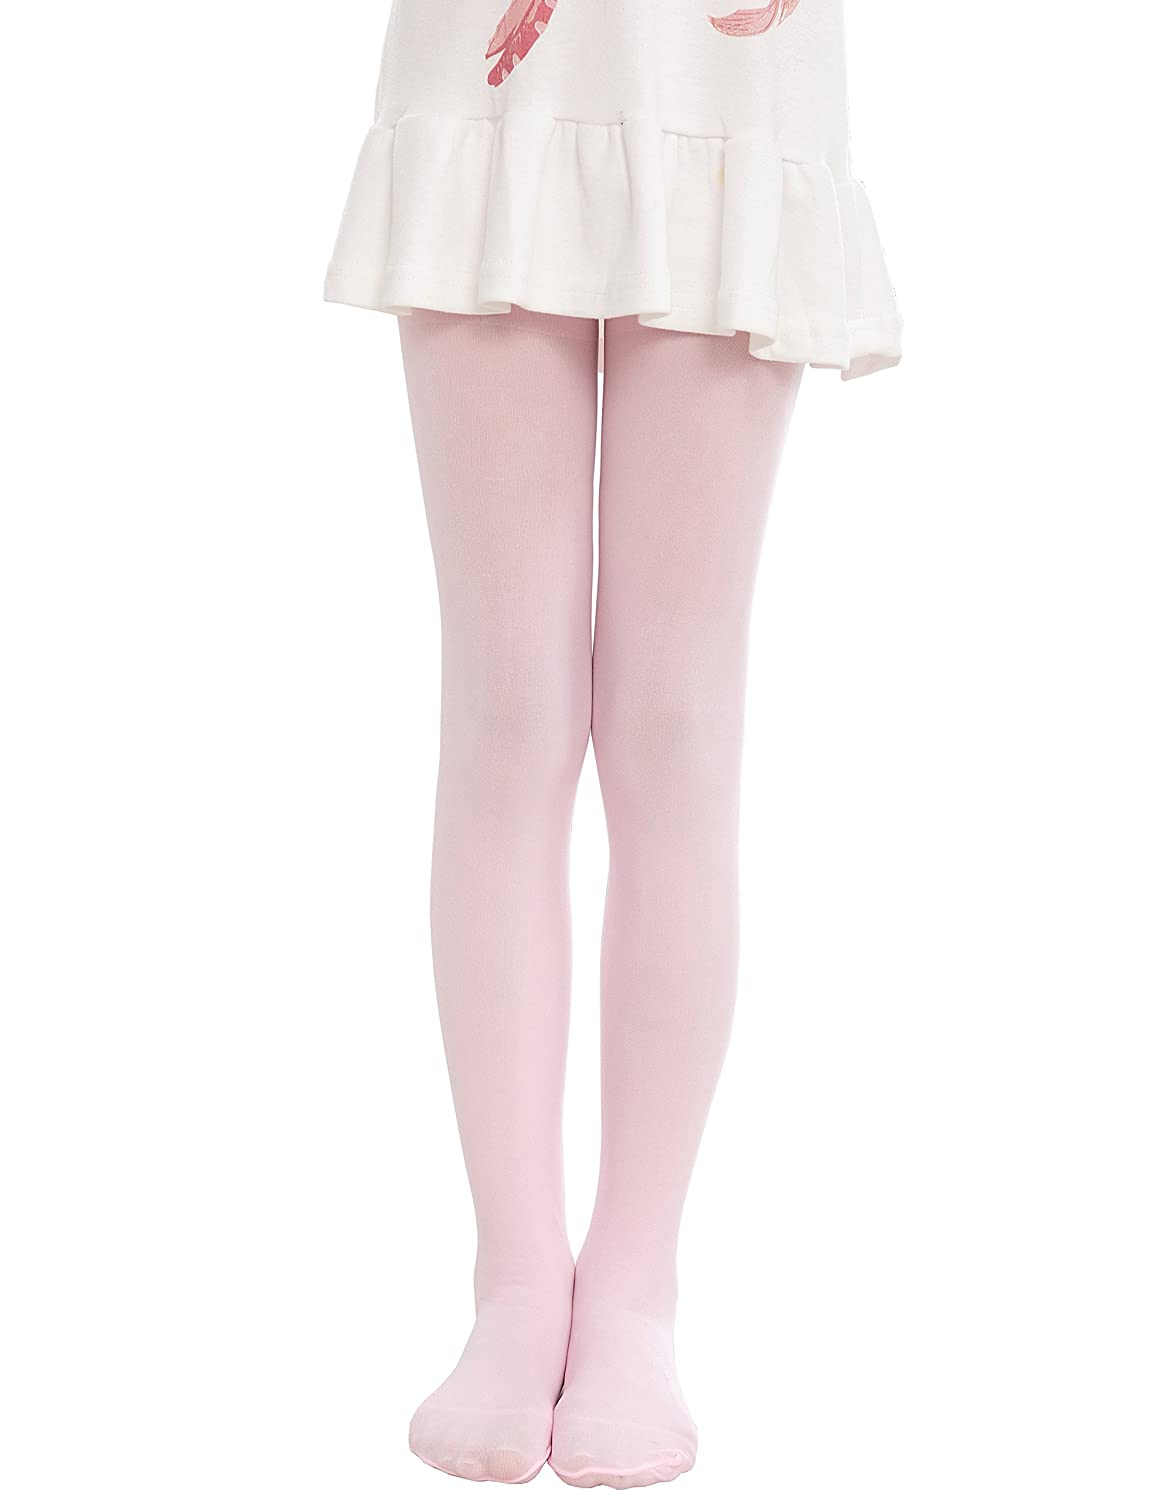 Anlaey Dance Footed Tights Microfiber Pro Ballet Solid Colored Stockings tight for Girls Kids